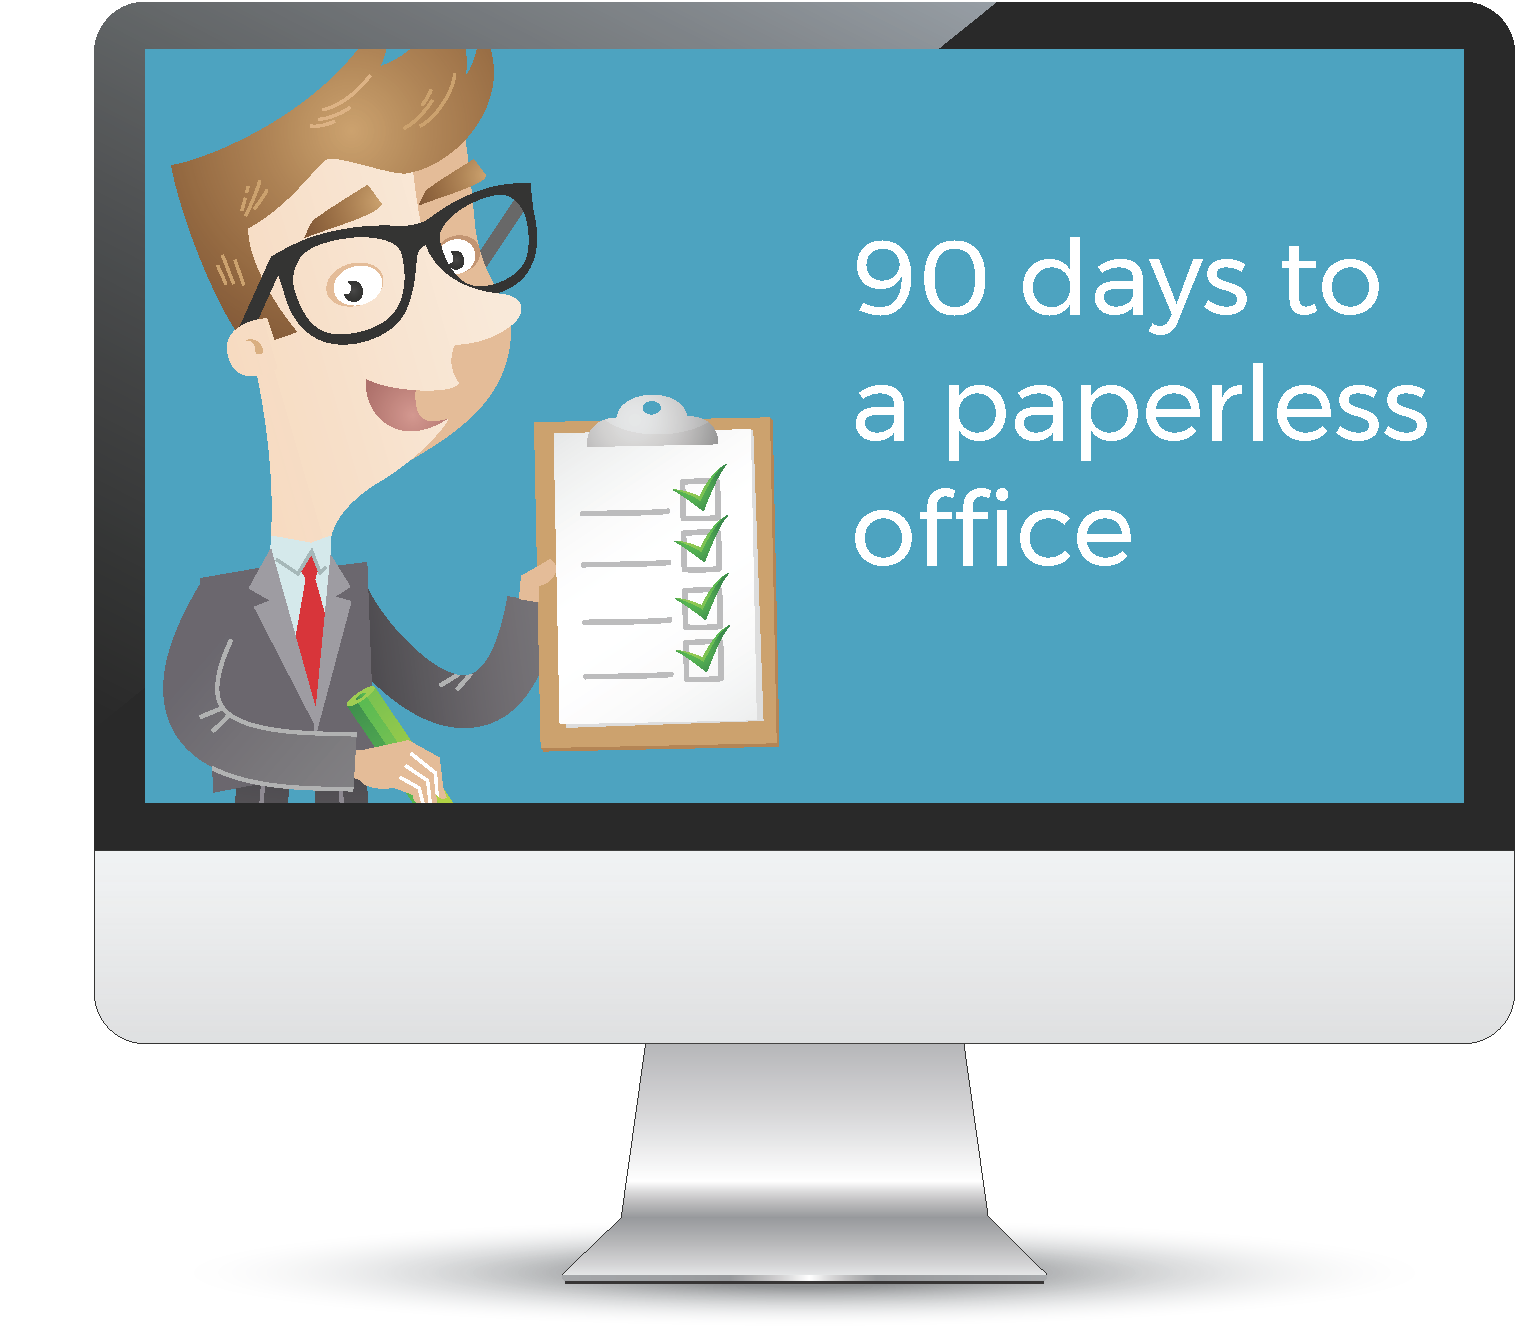 Go paperless in 90 days